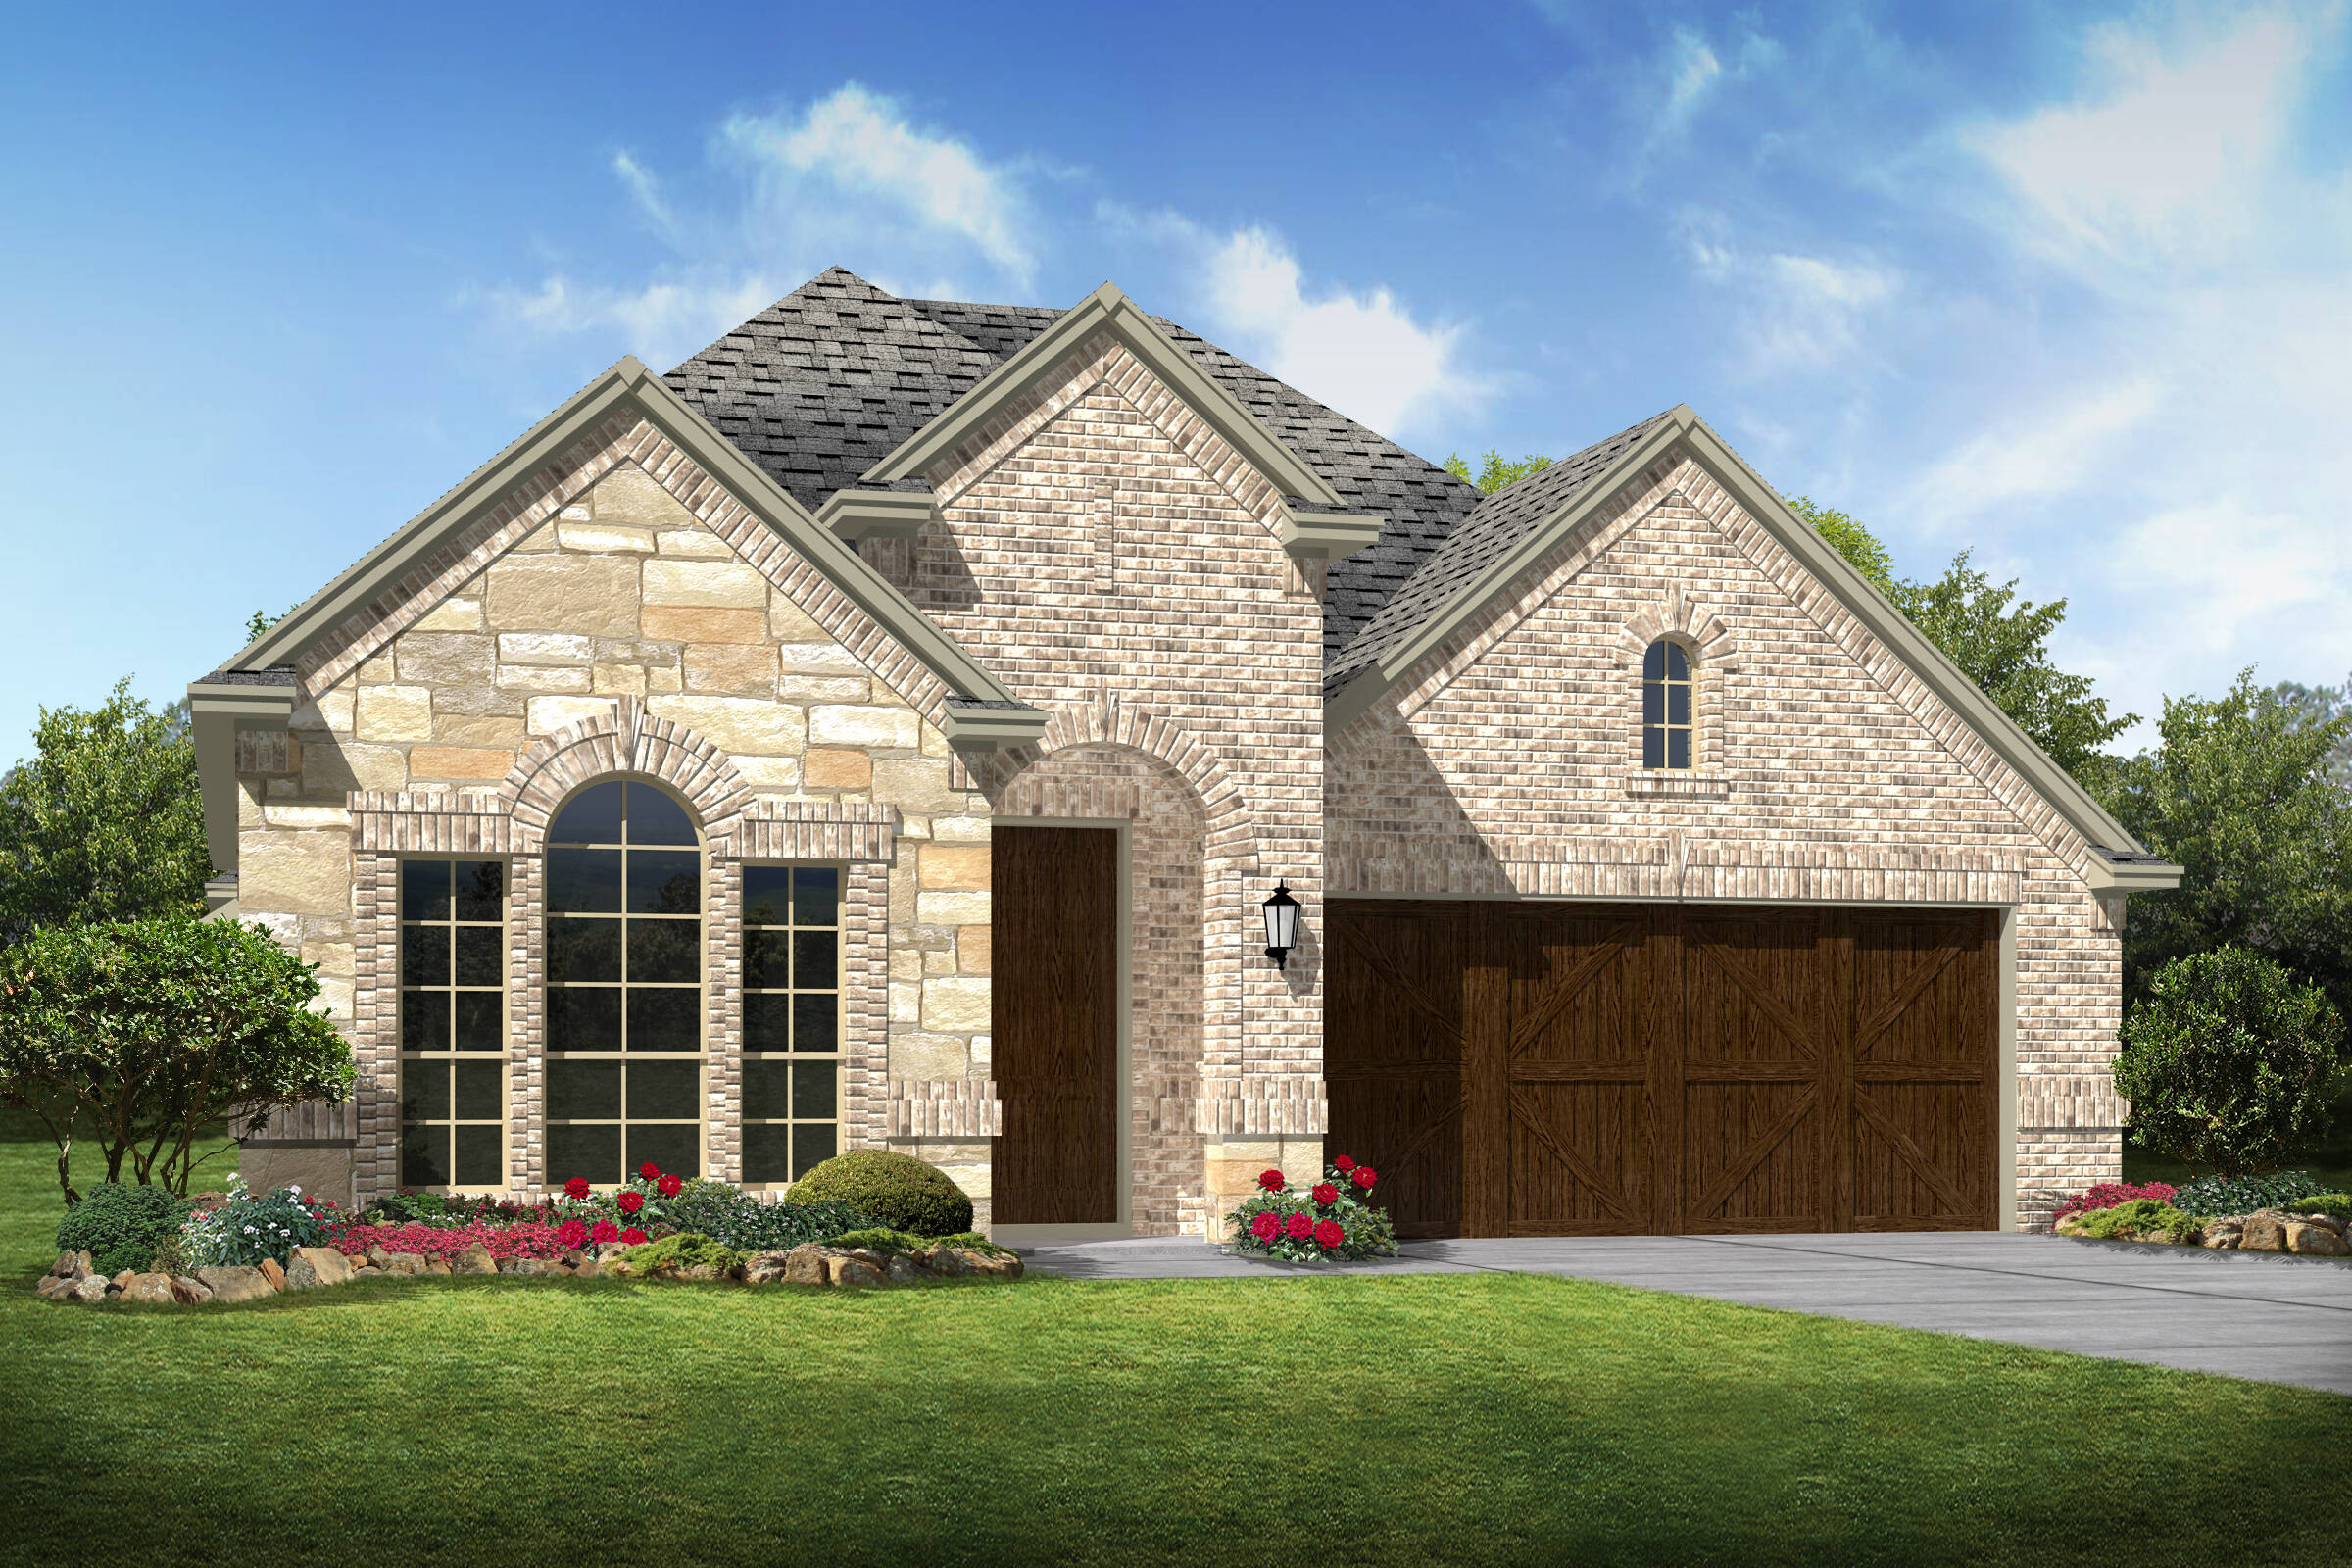 Lawrence d stone new homes dallas texas